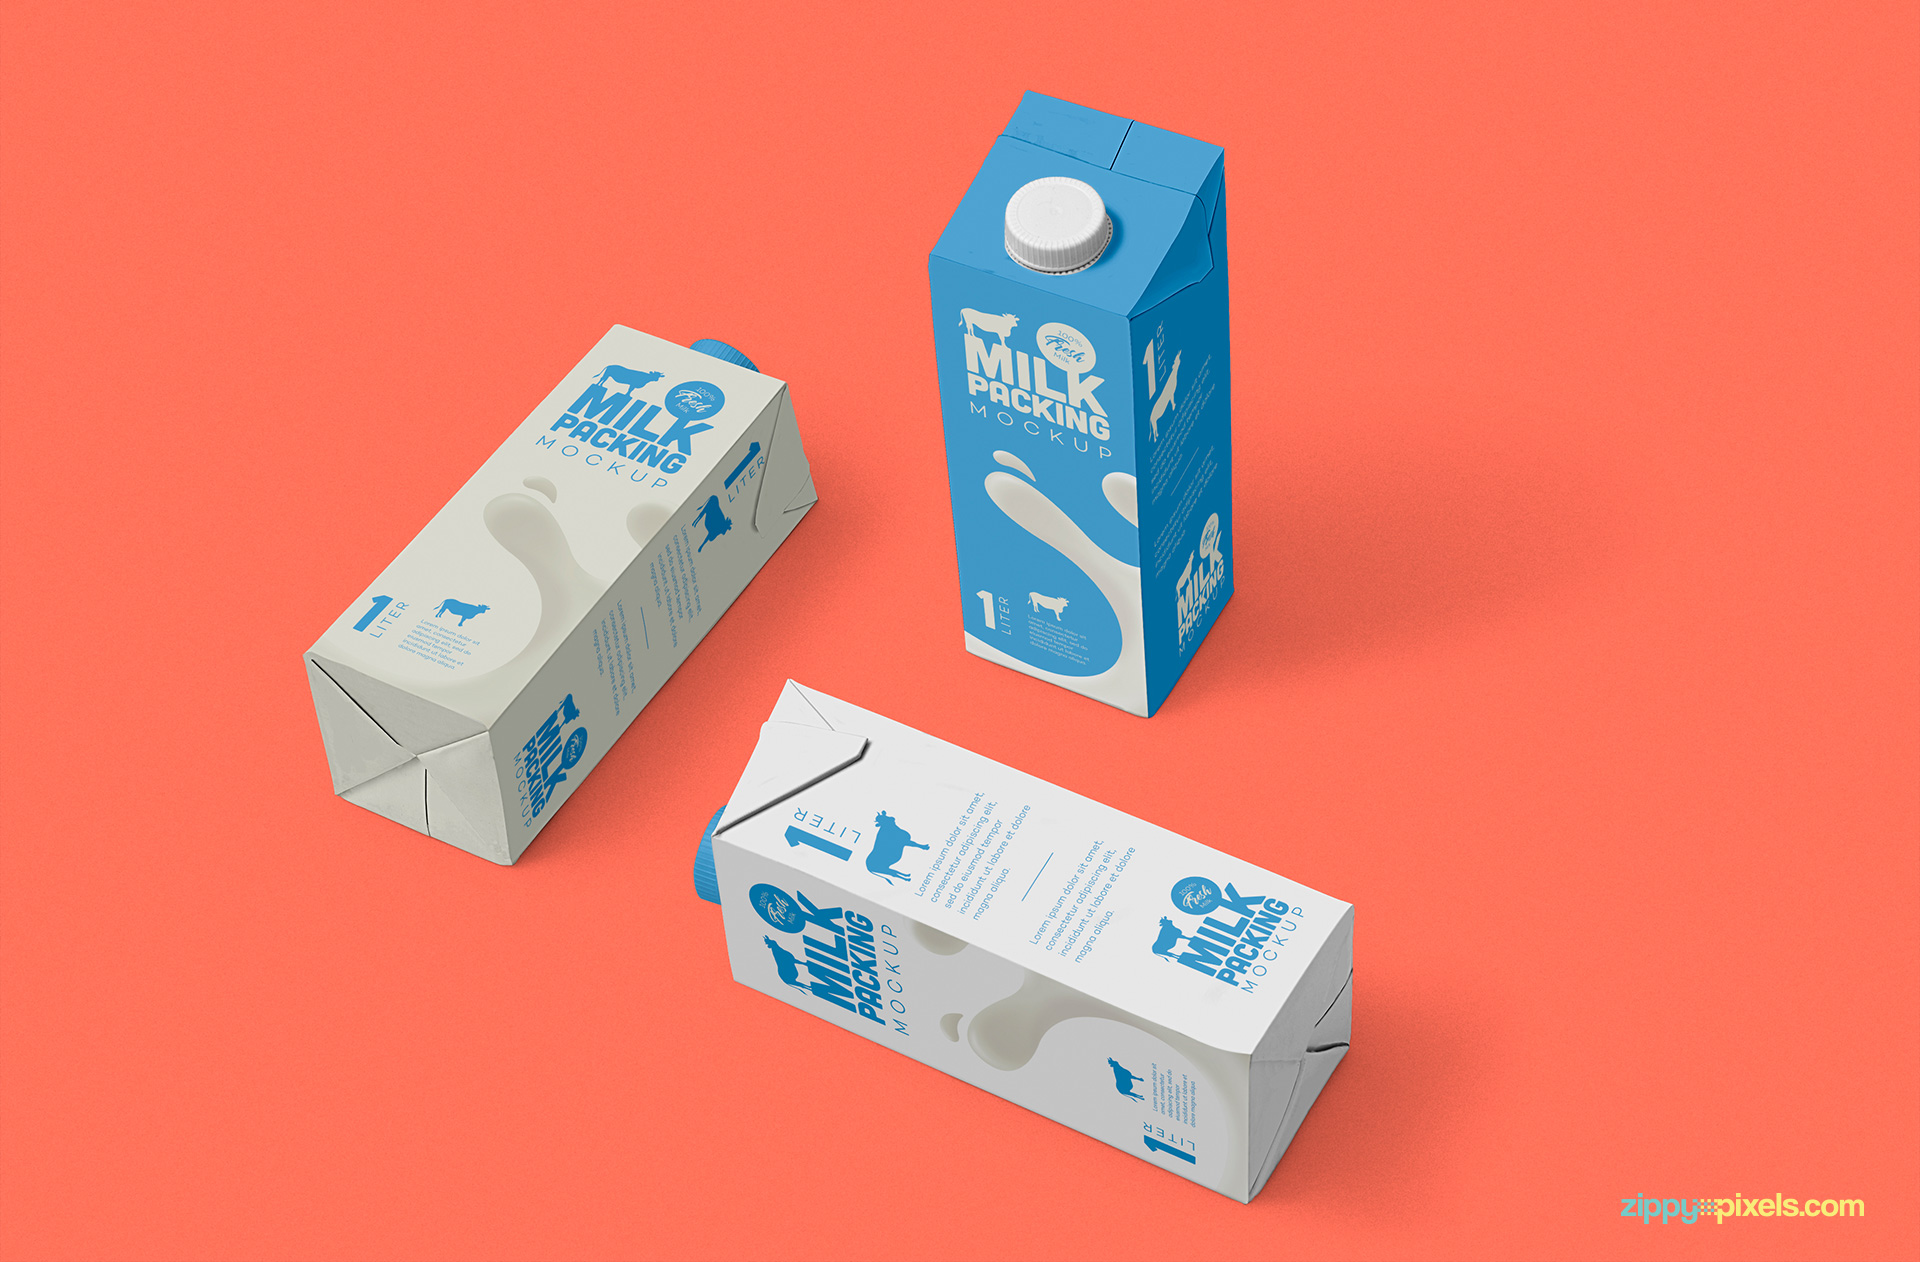 Elegantly designed milk packaging mockup.